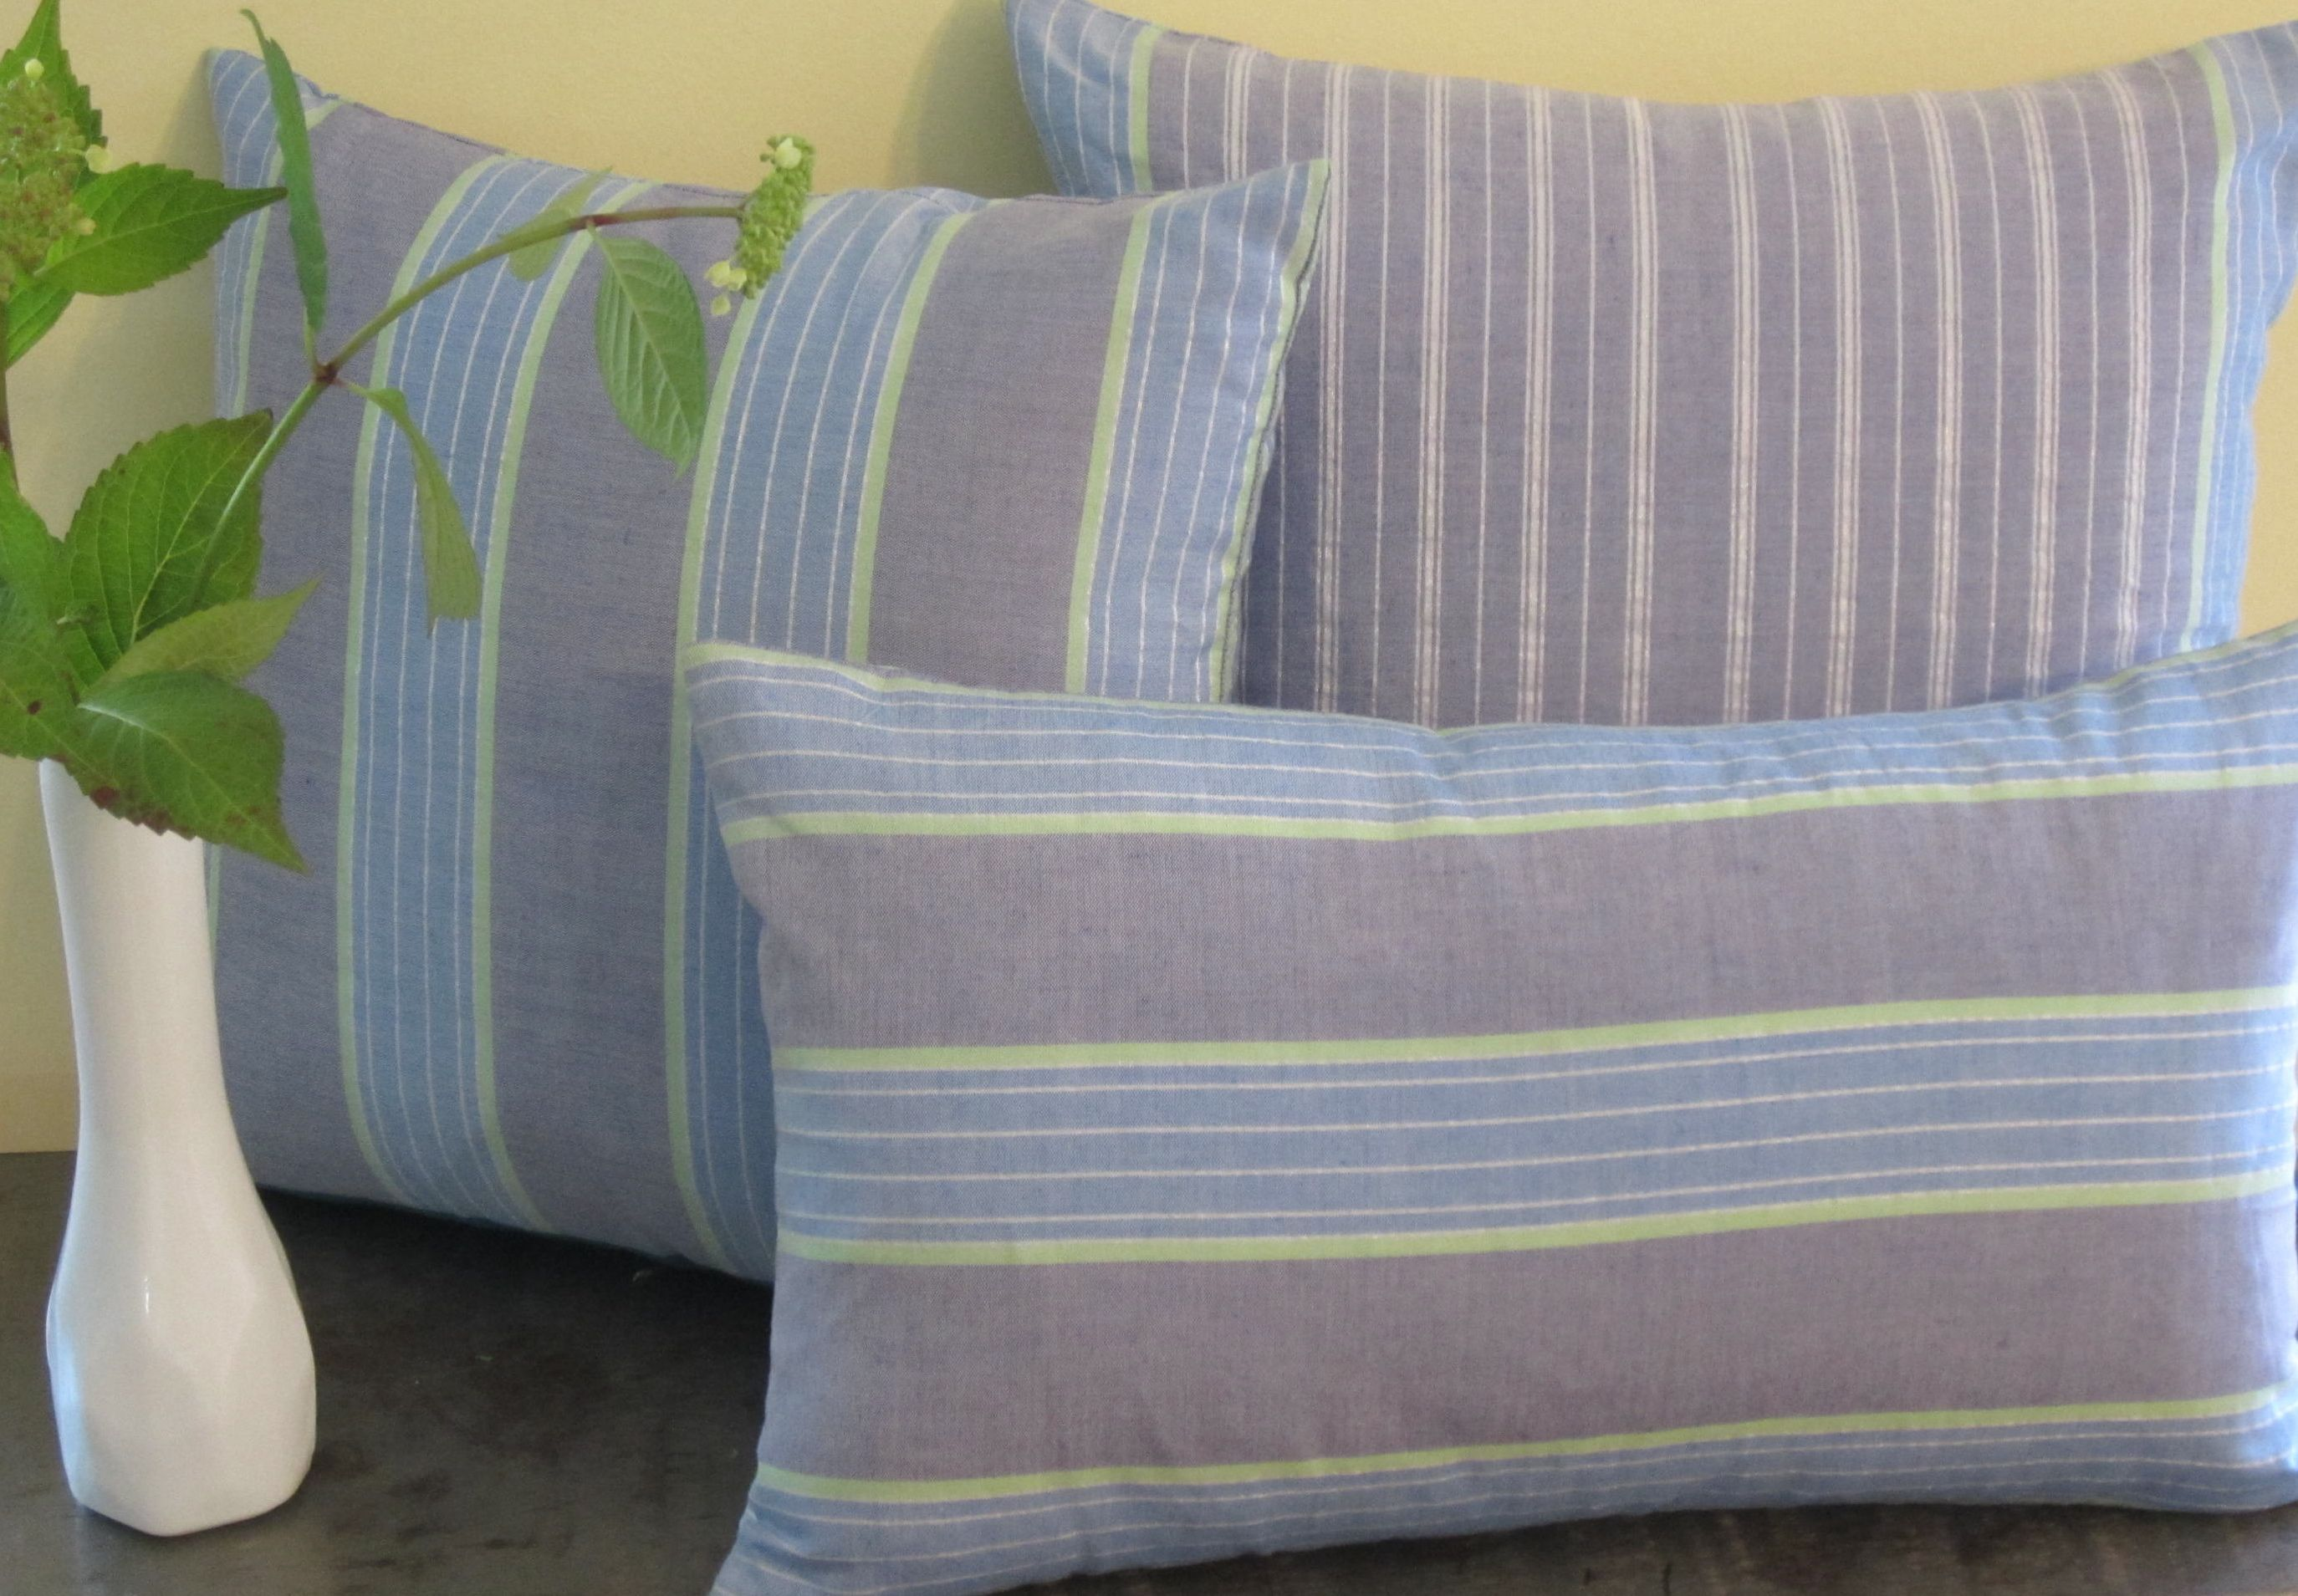 Handwoven Fabric From Malaysia Summer Stripes Pillow Covers